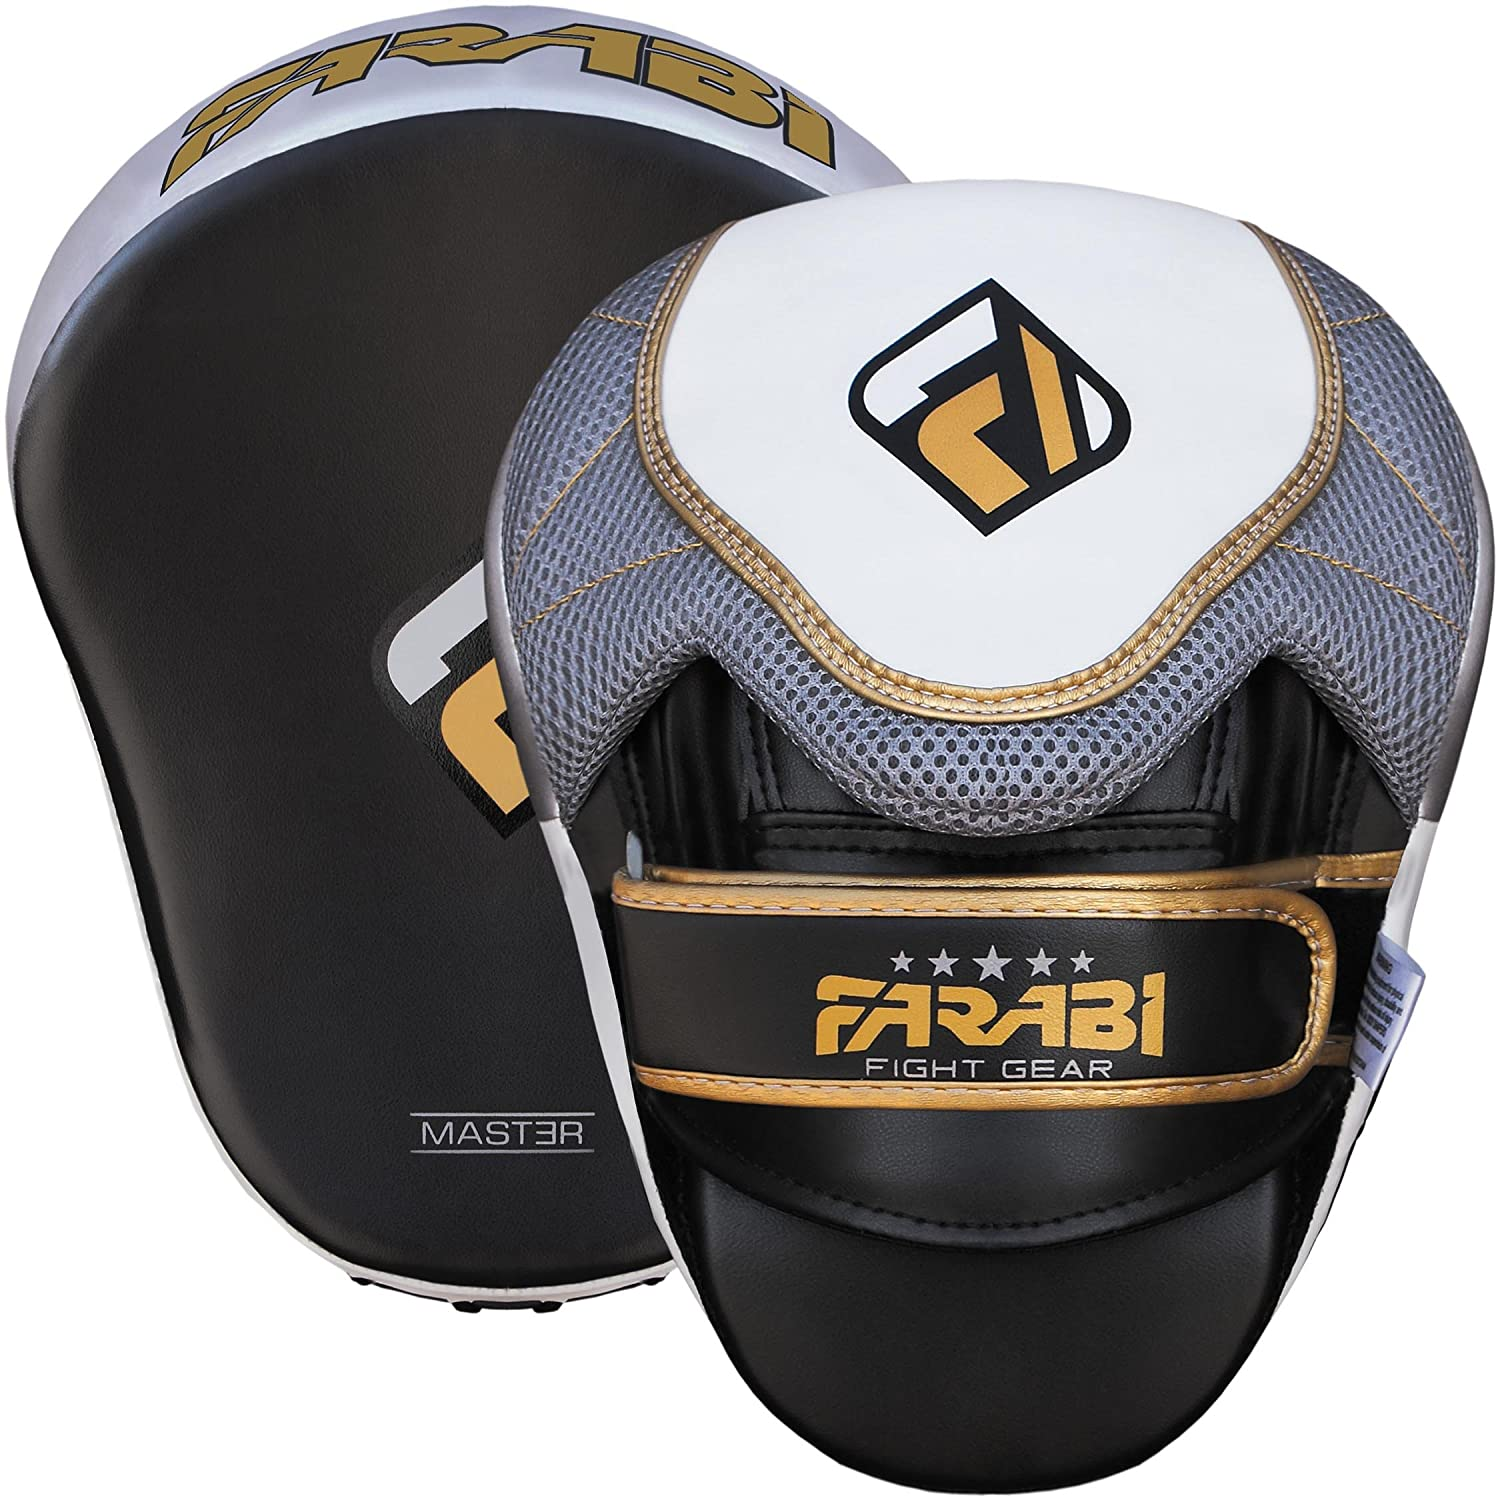 Boxing Training Pads Hook /& Jab Mitts Farabi Curved Focus Pads